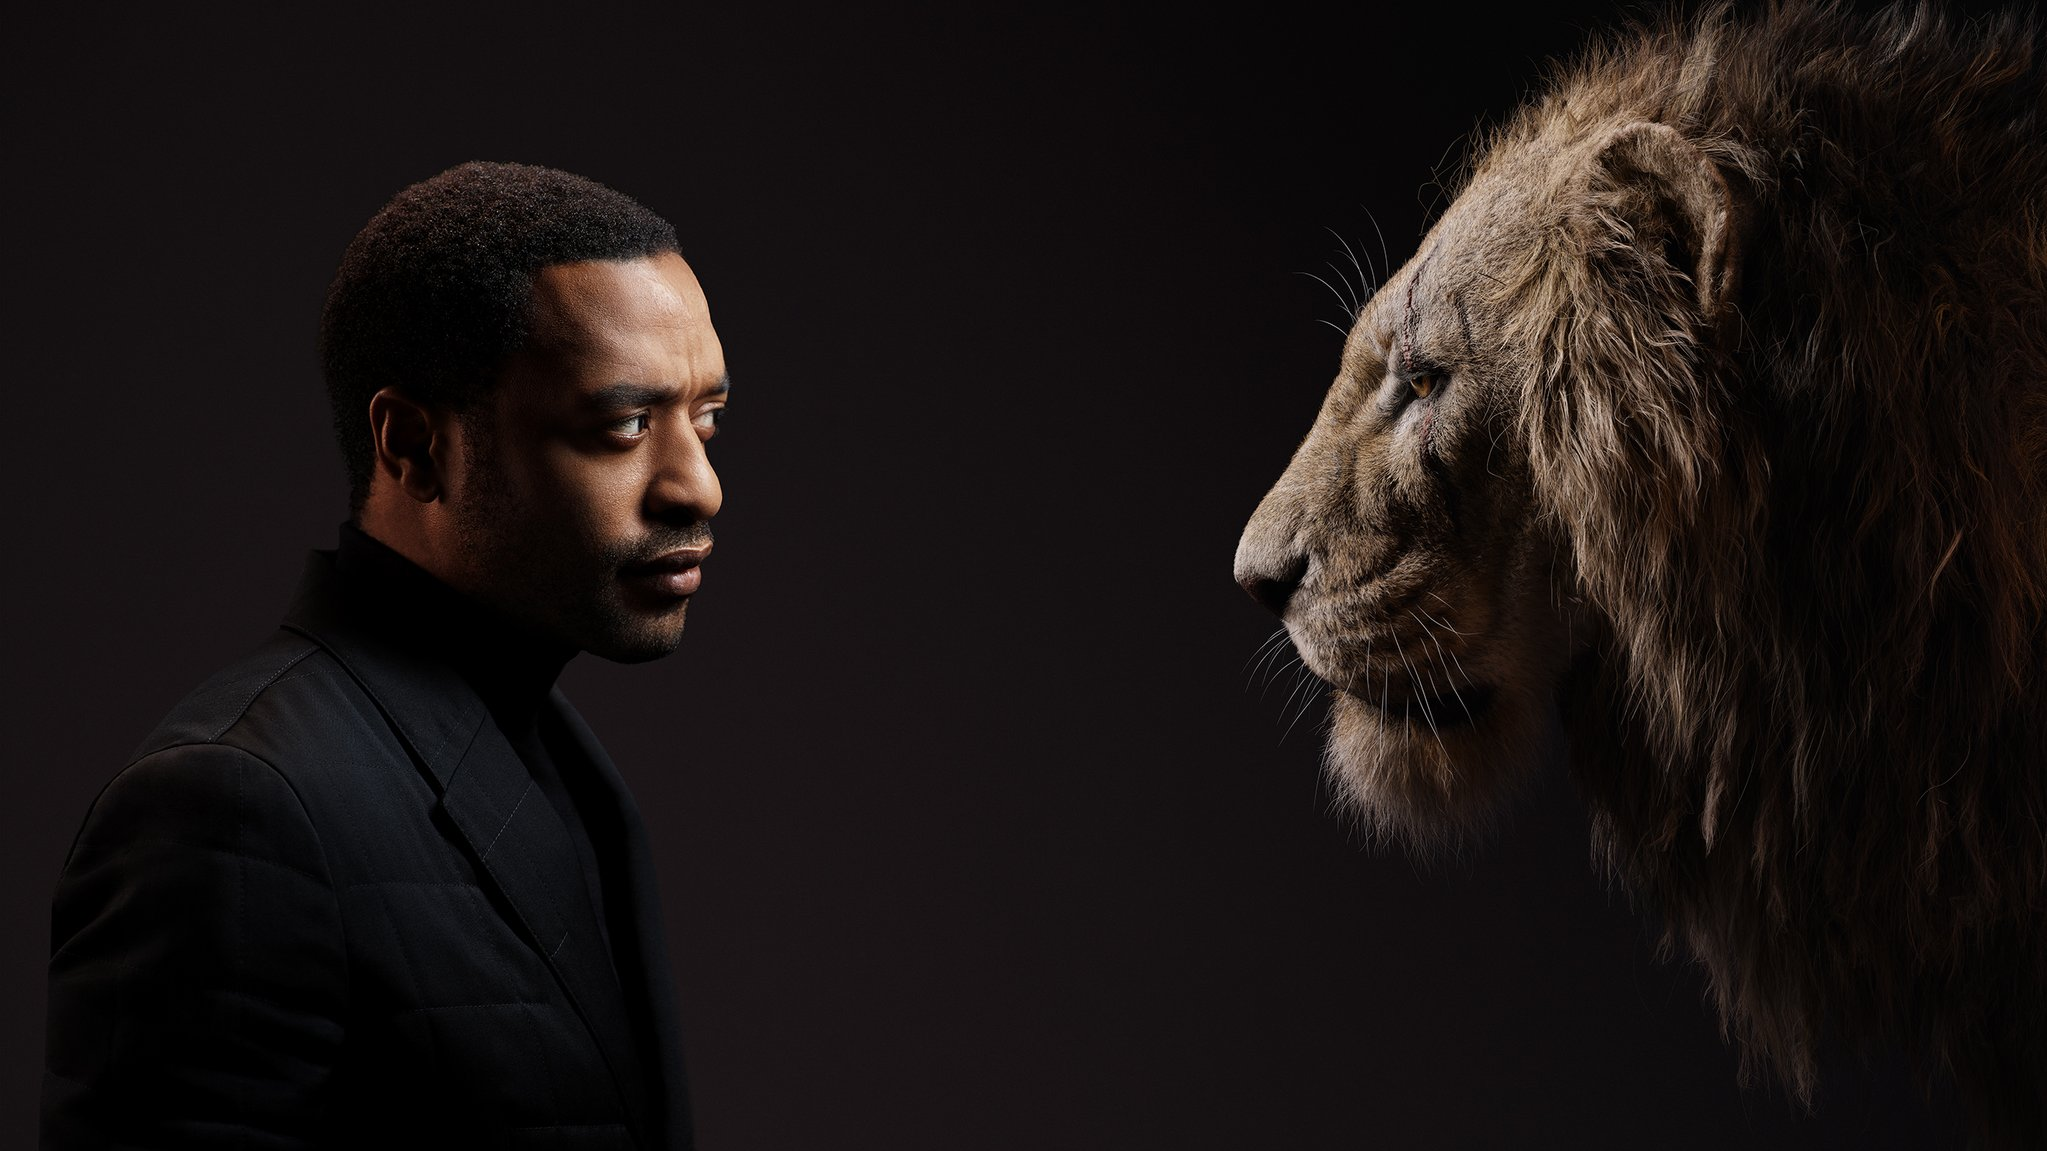 The Lion King Pride 03 - Chiwetel Ejiofor Scar